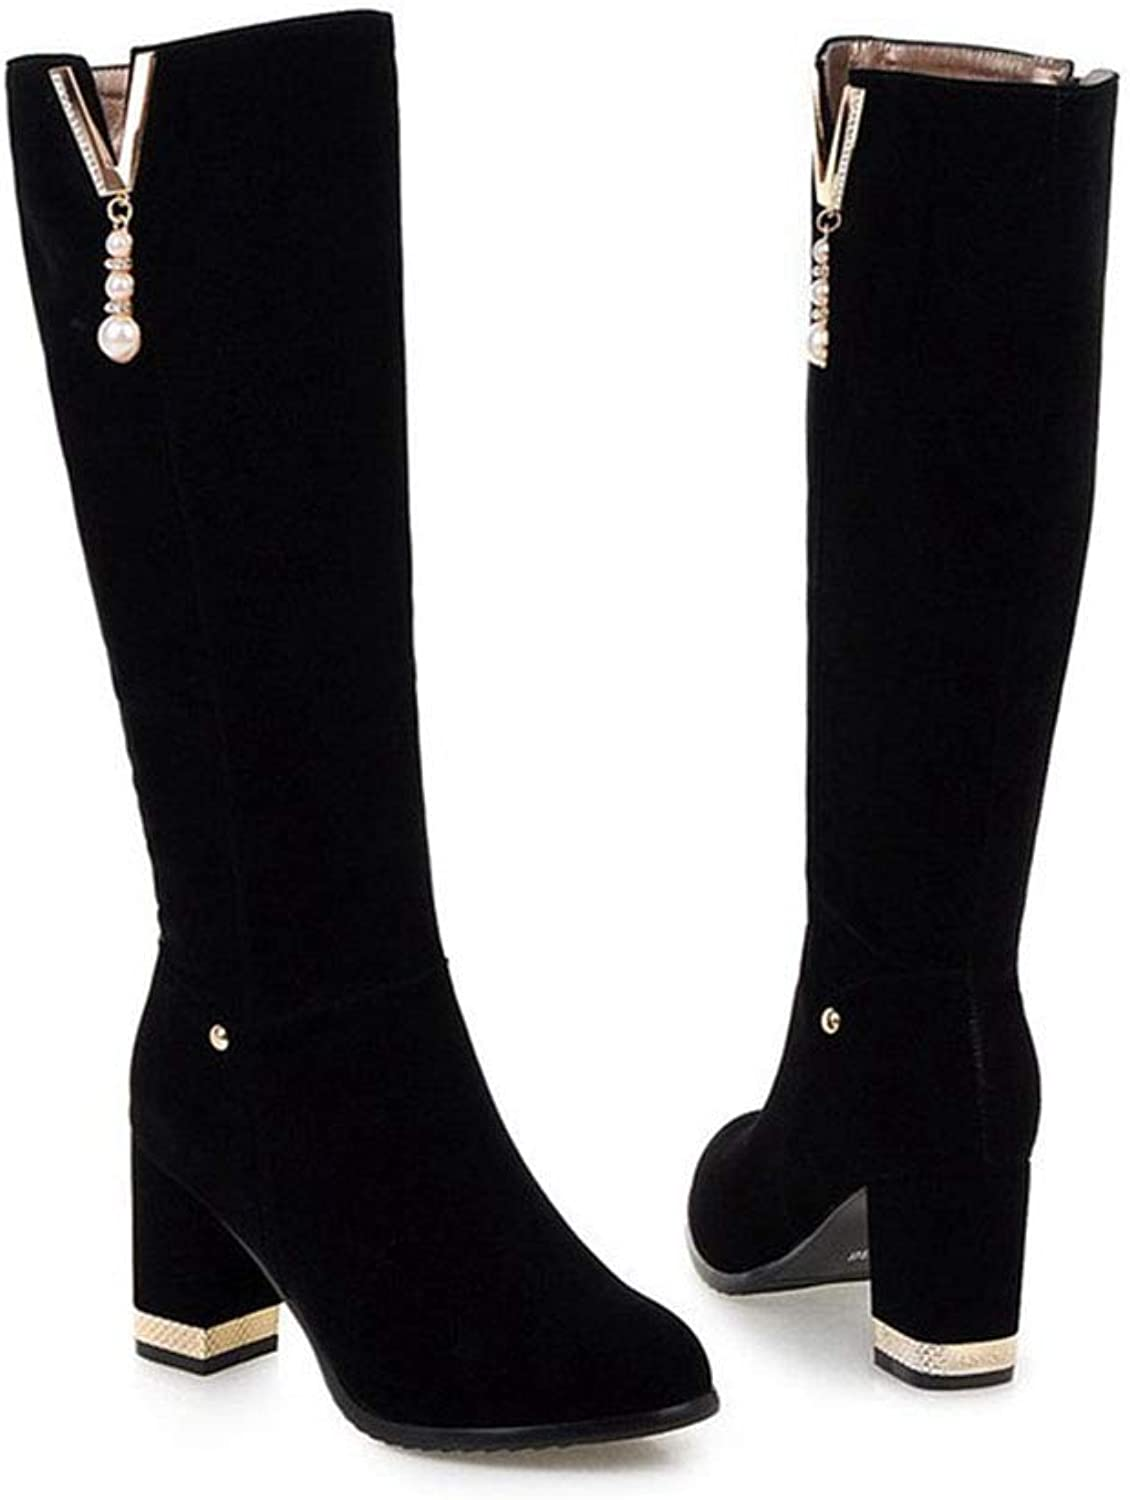 GONGFF Beaded High Boots Women's Large Size High Heel Suede Women's Boots